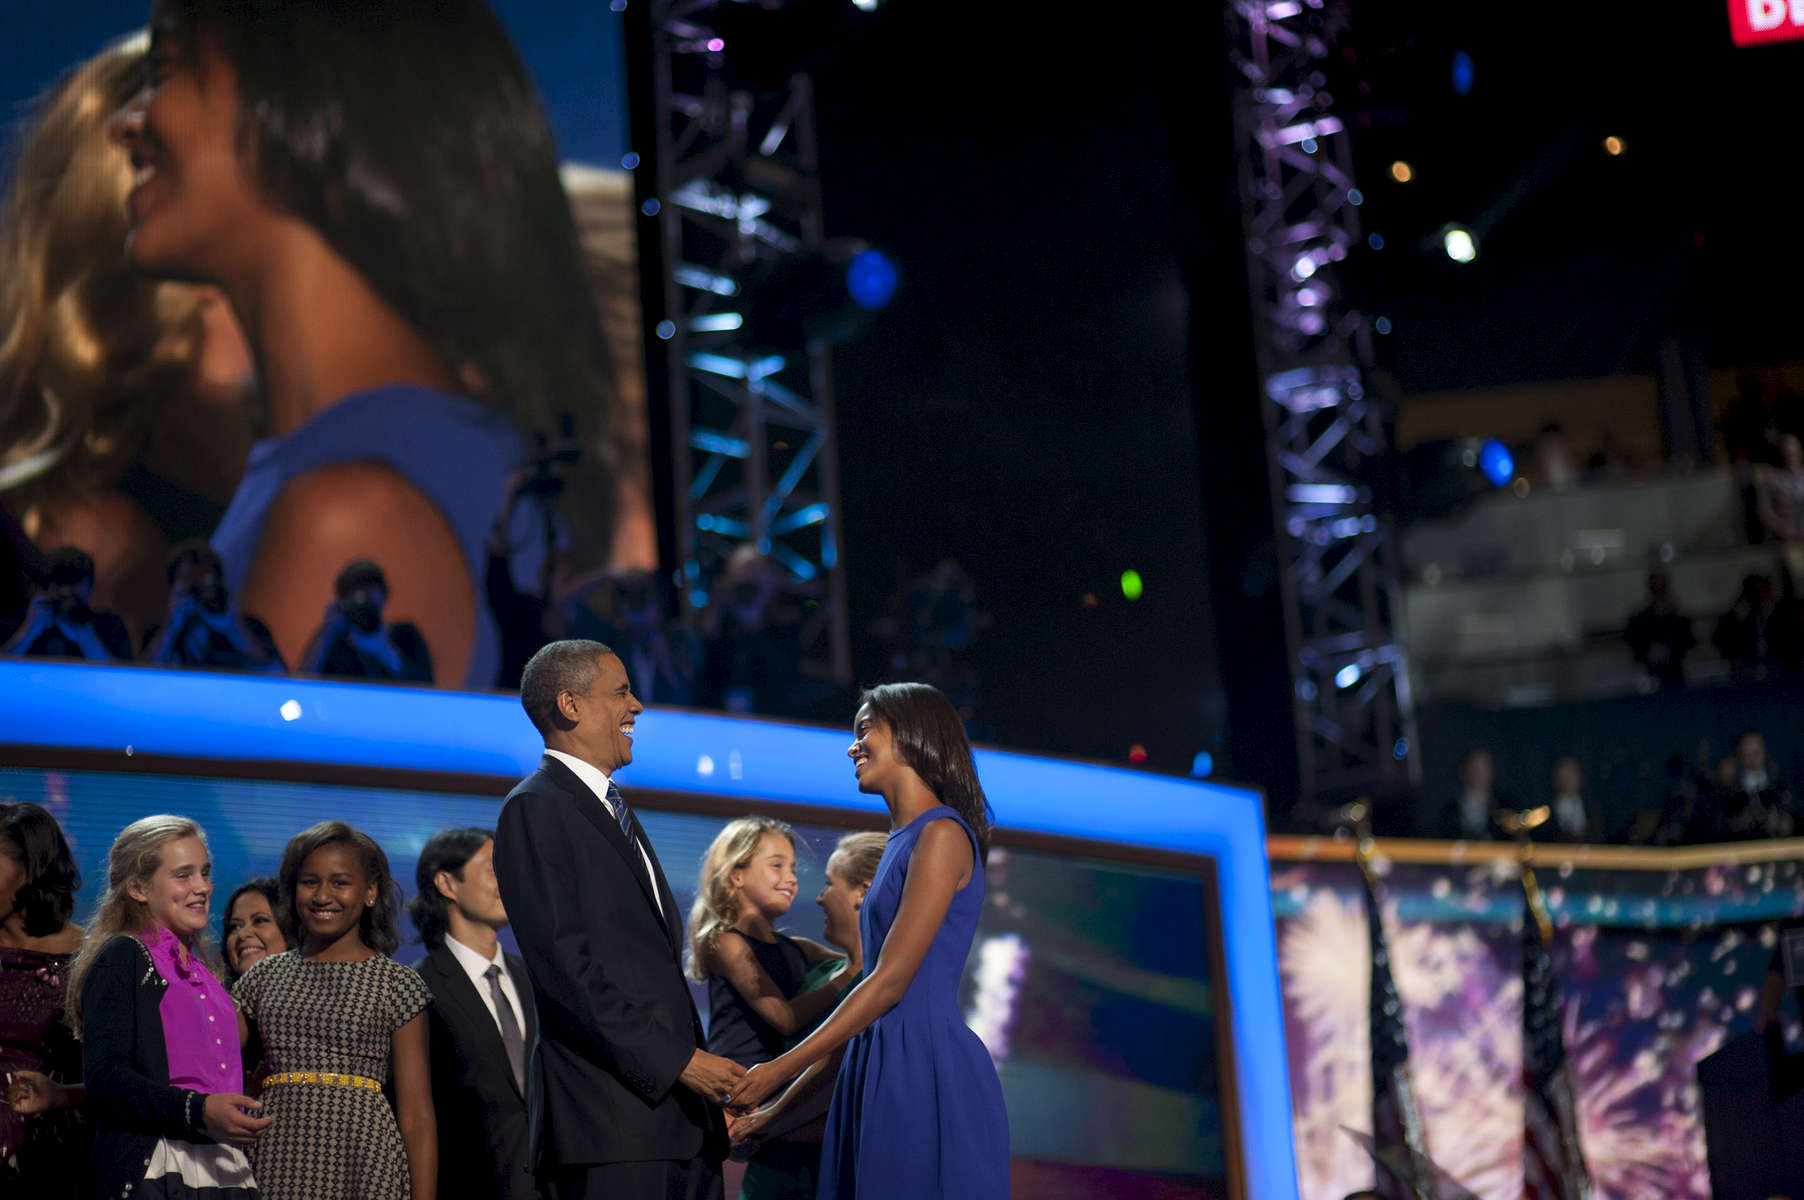 September 6, 2012 - CHARLOTTE, NC: President Barack Obama holds hands with his oldest daughter Malia after his speech at the 2012 Democratic National Convention in Charlotte. (Scout Tufankjian for Obama for America/Polaris)